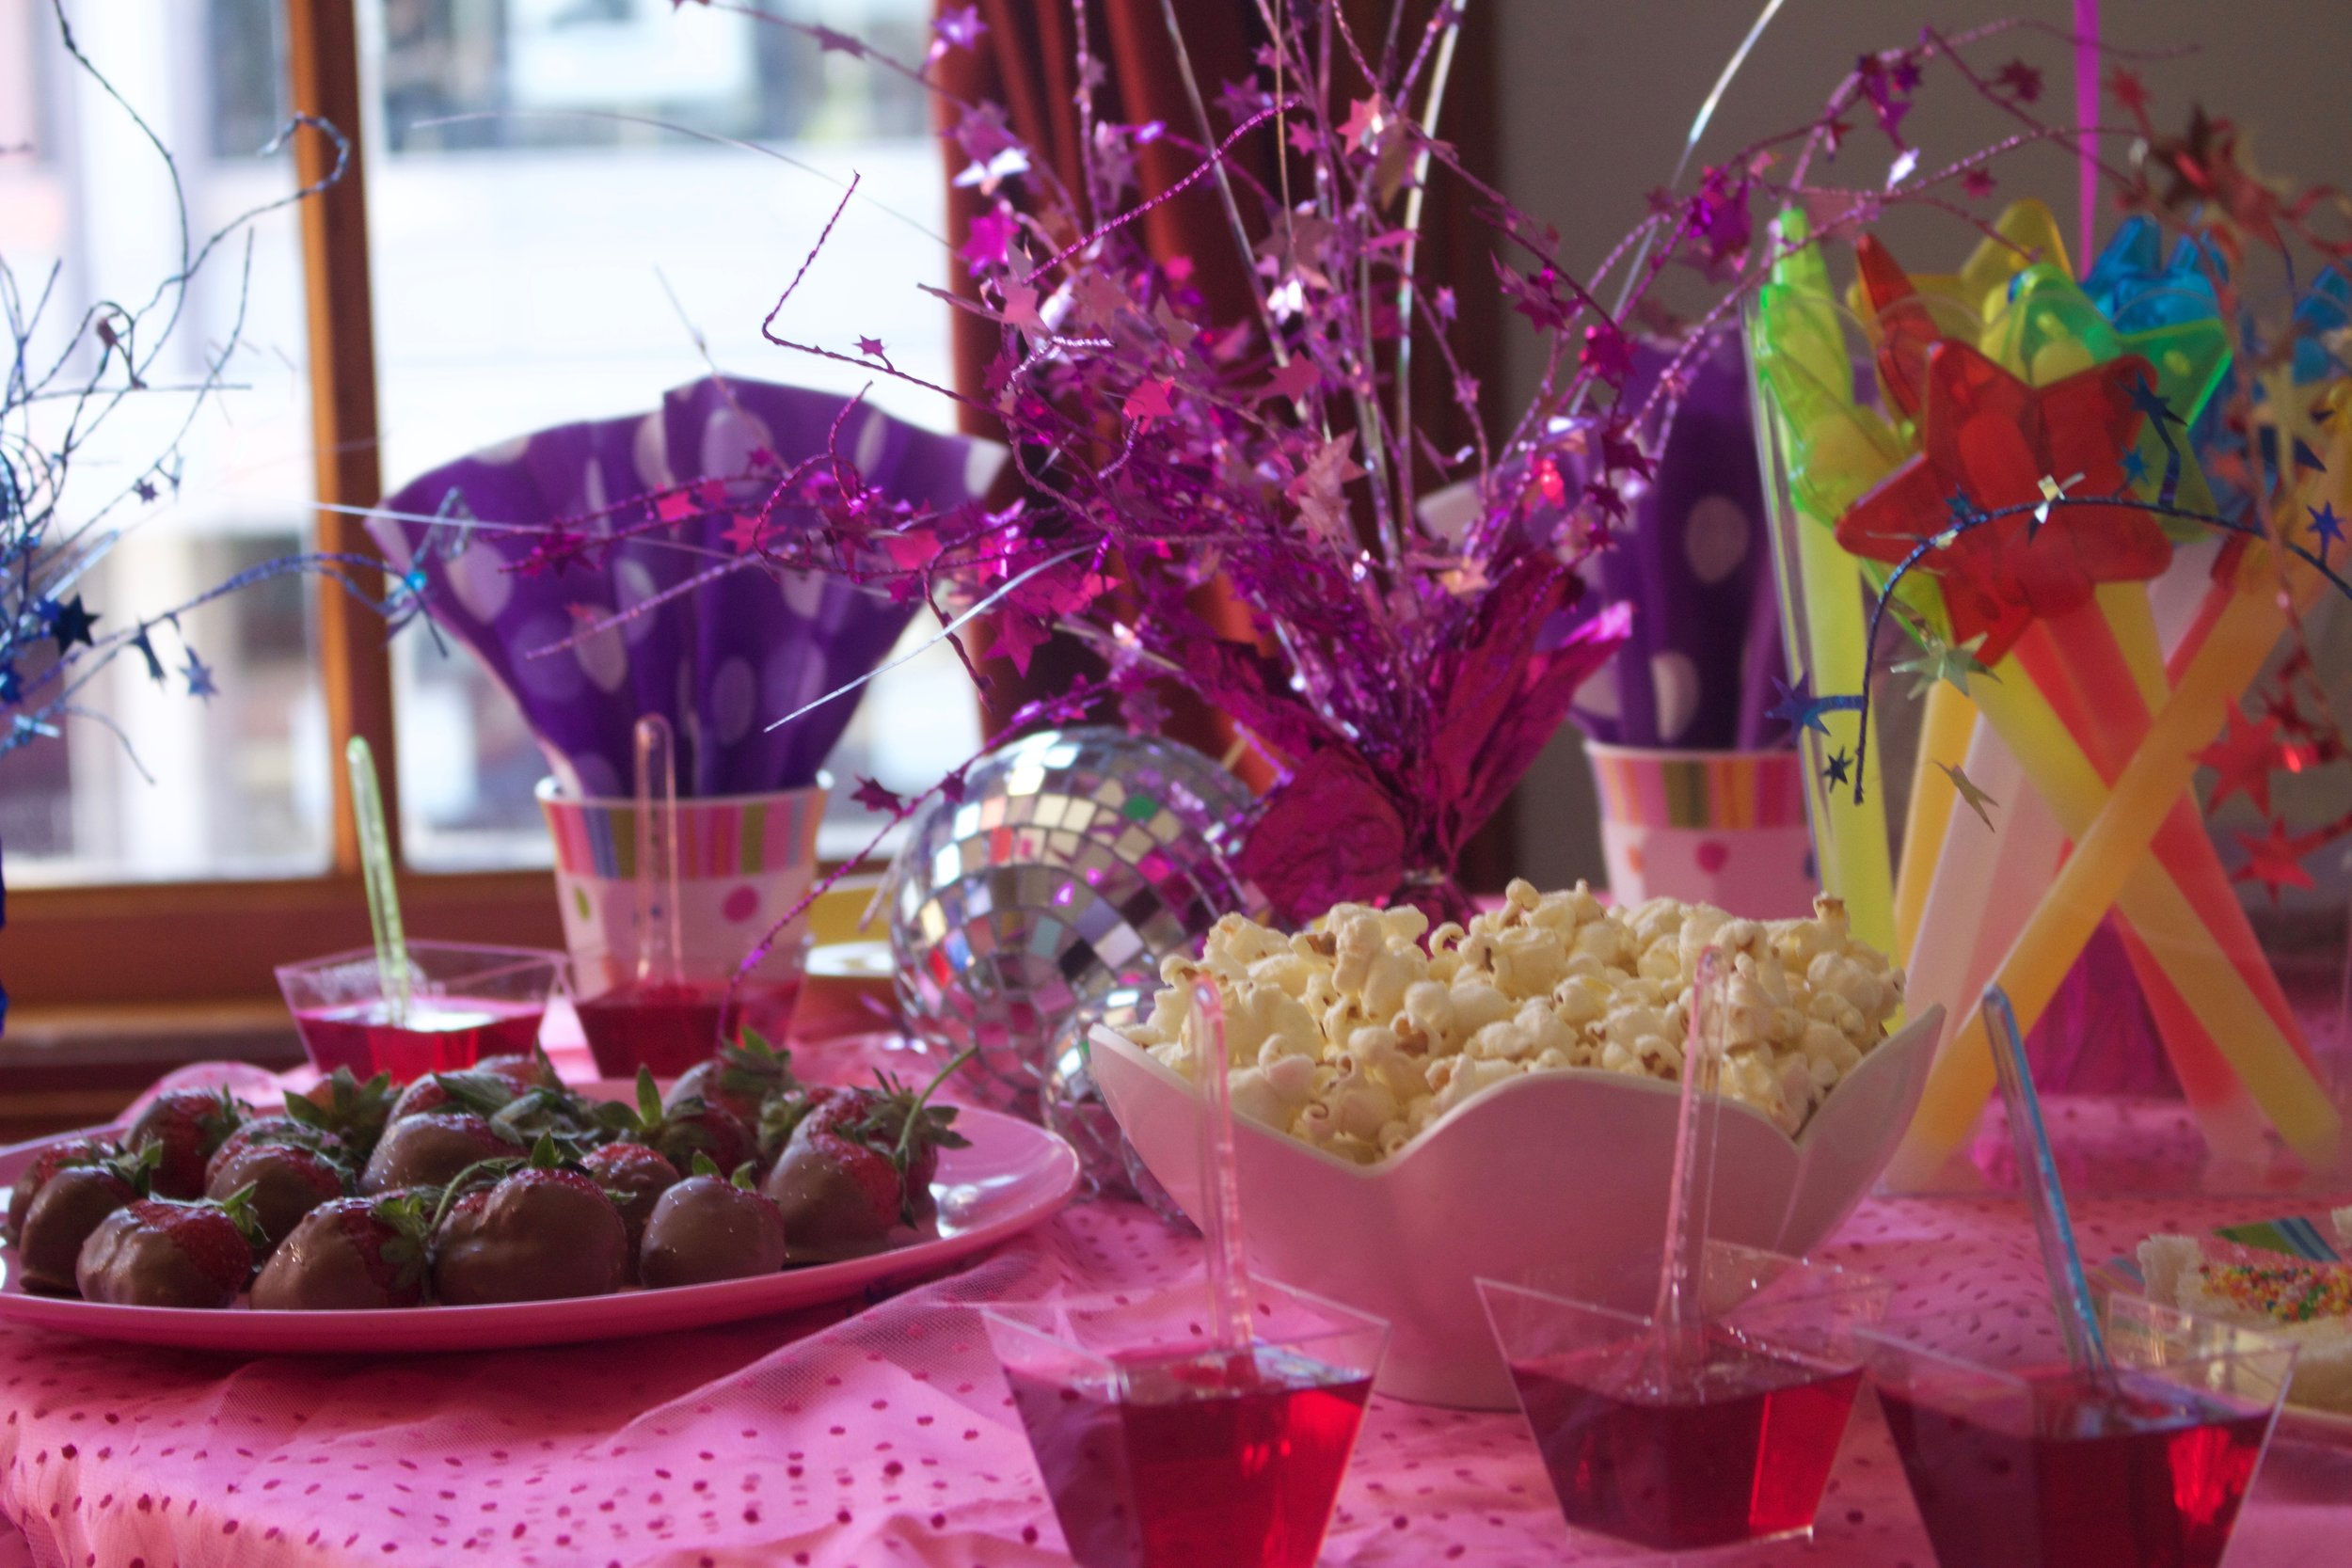 Kids Party - 20pp under 10'sfor groups of 20+all to share on a pretty tablechocolate crackles, fairy bread, sandwiches, marshmallows,jelly cups, popcorn & chocolate strawberrieshot food to sharecheese & tomato pizza, schnitzel bites & chips